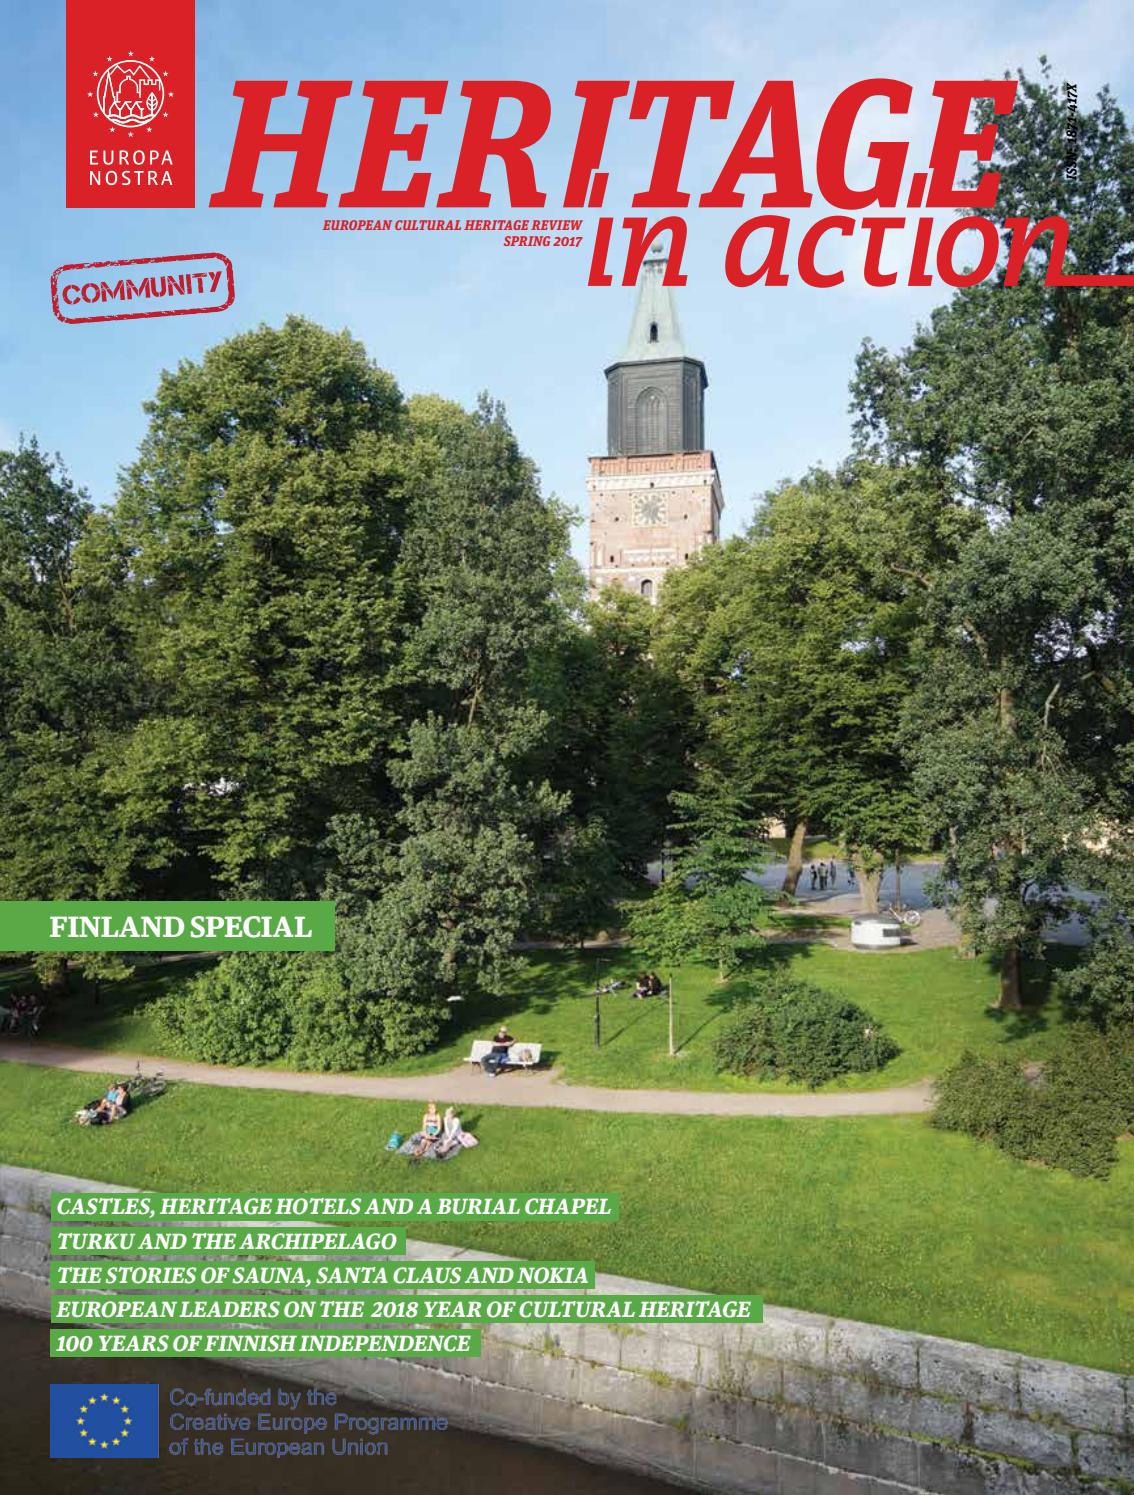 Heritage in Action Finland Special 2017 by Europa Nostra - issuu 6b2f2497611c